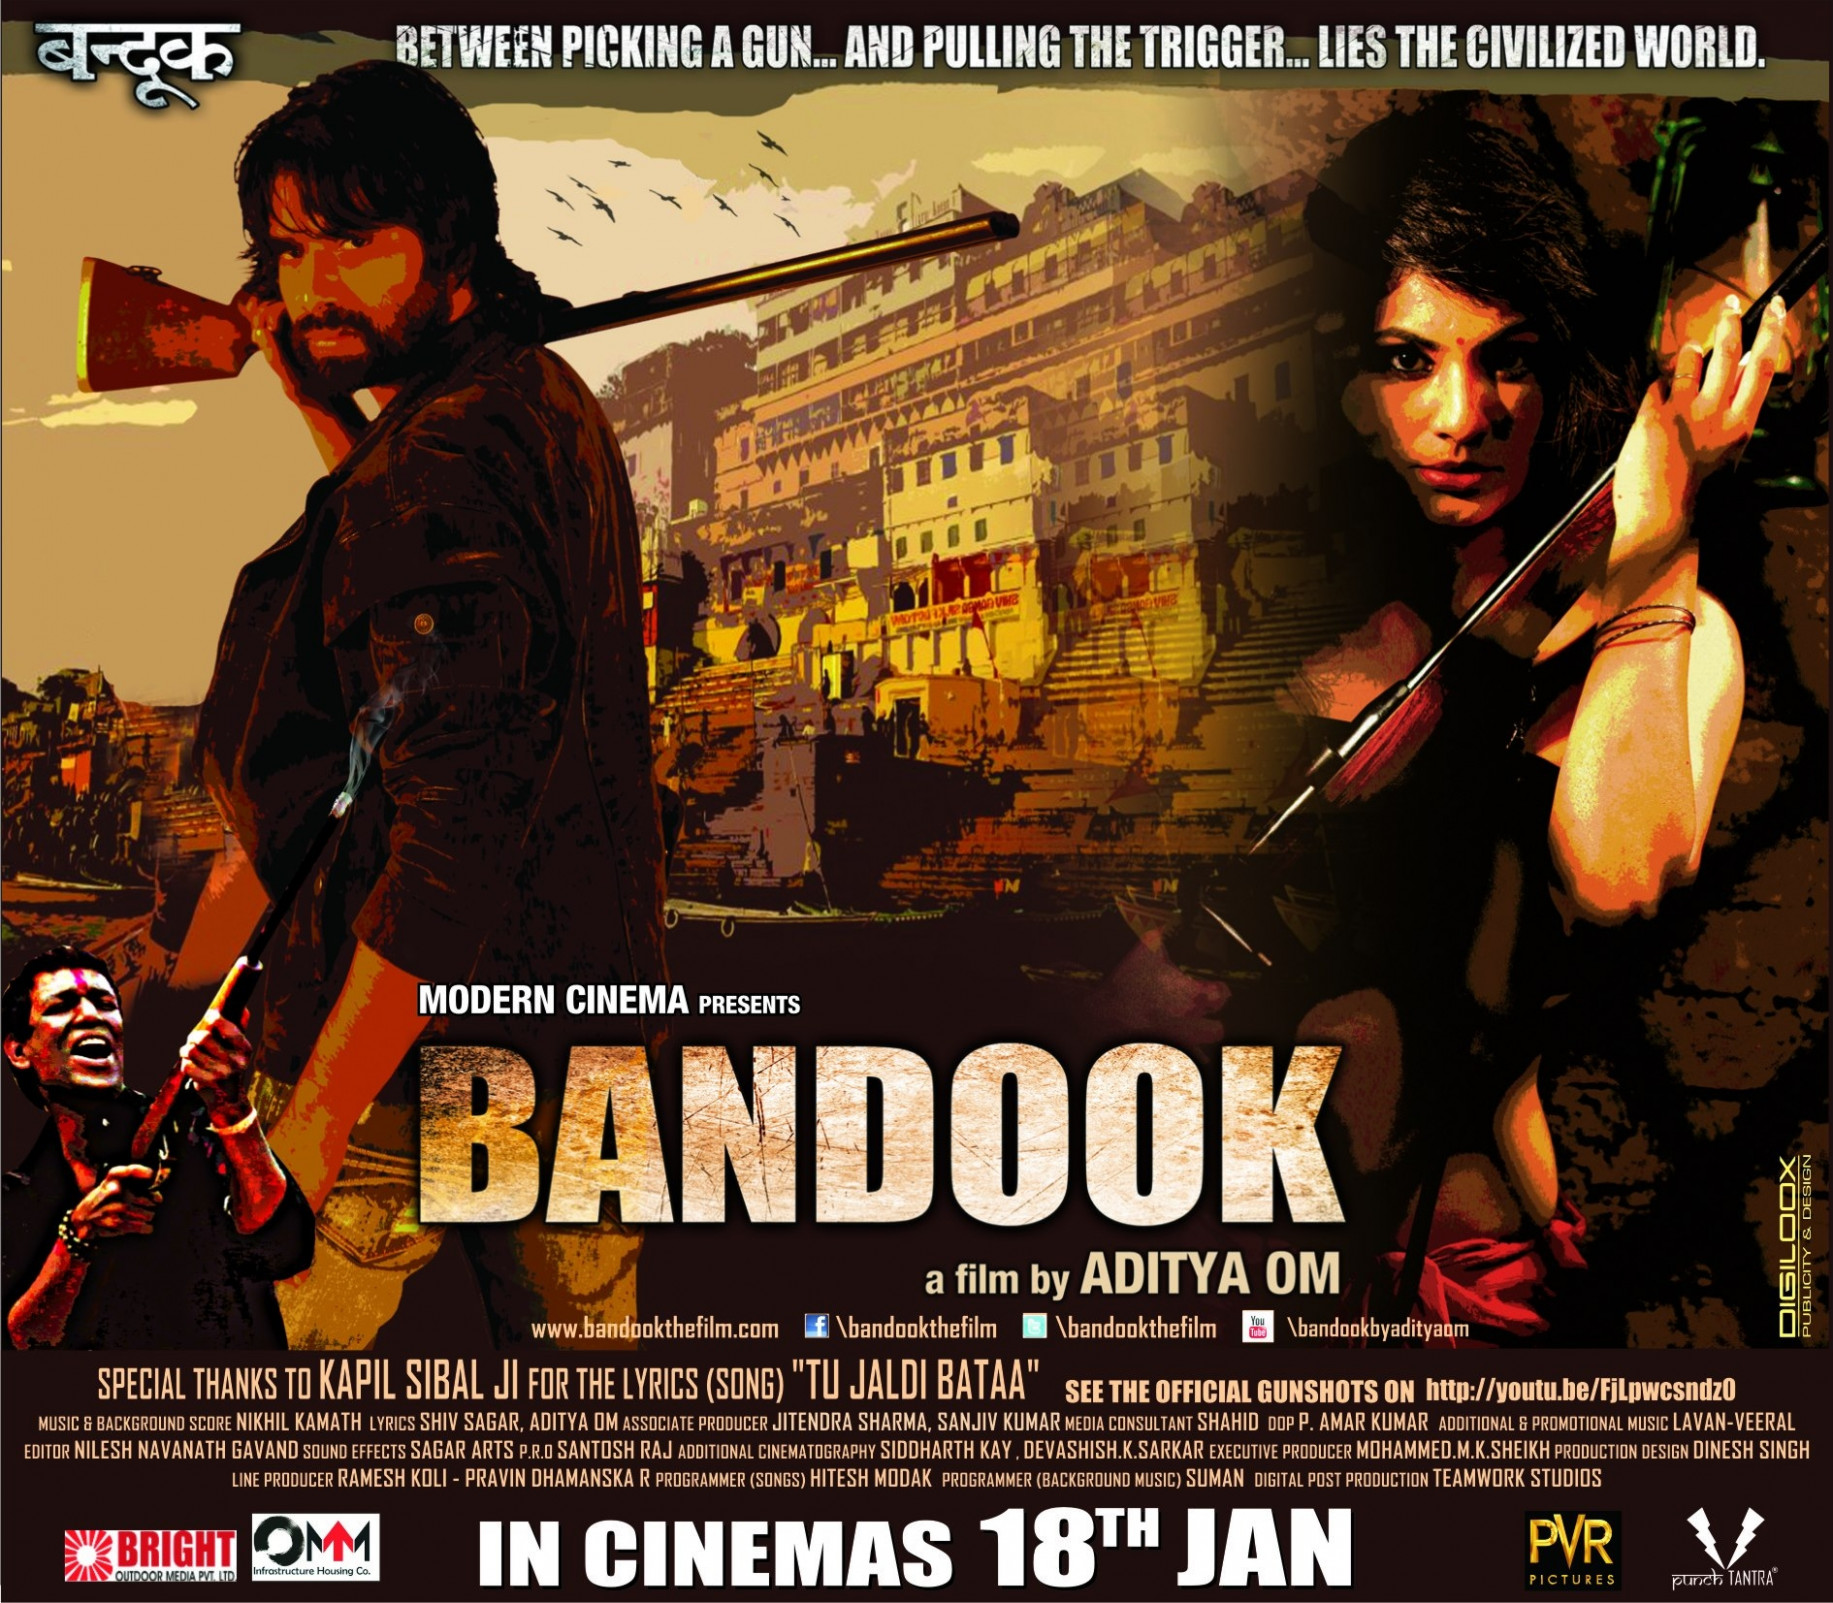 Bandook - Movie Poster #4 (Original) - Funrahi